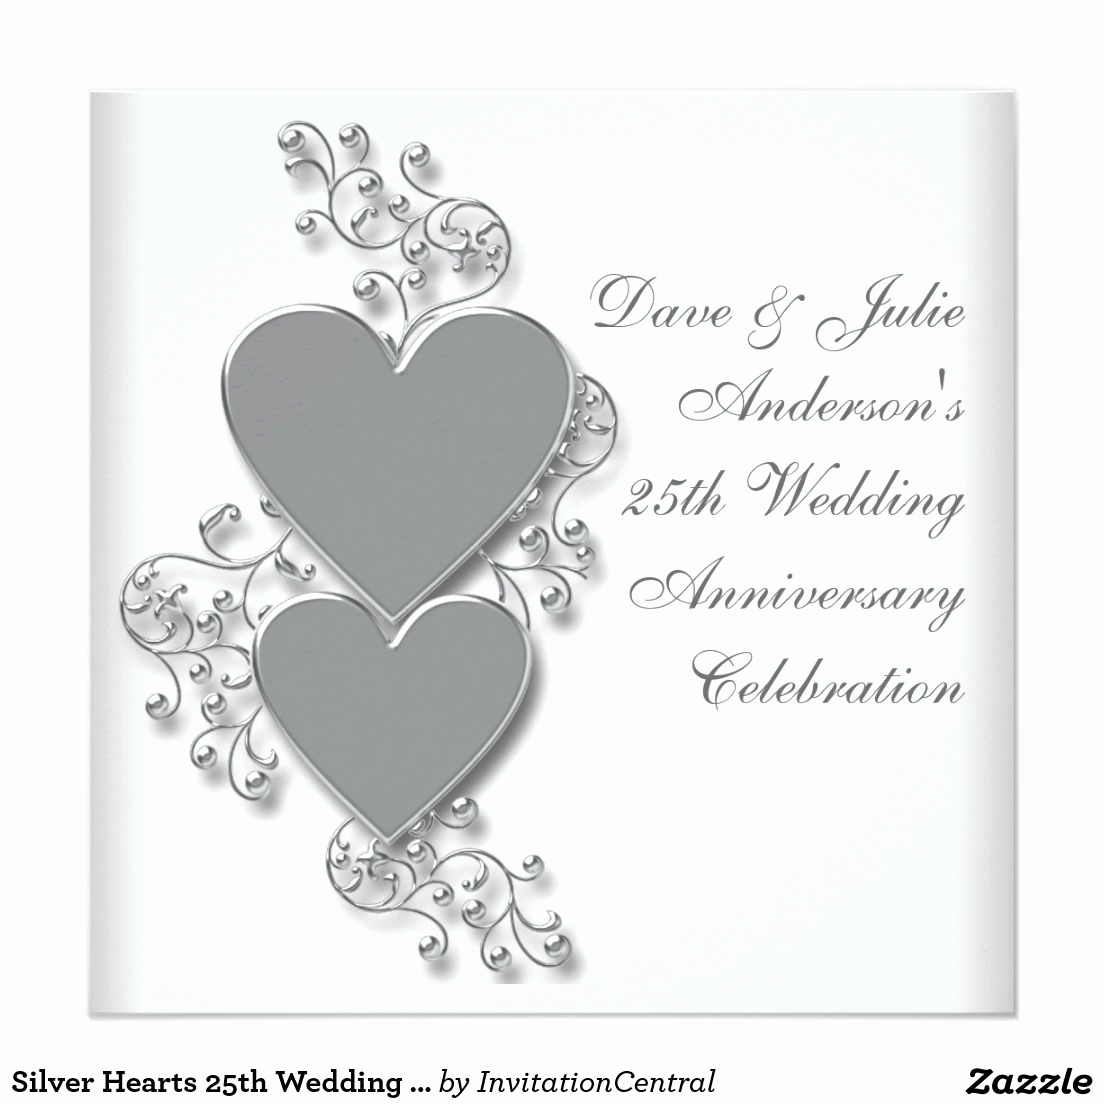 25th Anniversary Invitation Cards Luxury Invitation Cards for 25th Wedding Anniversary